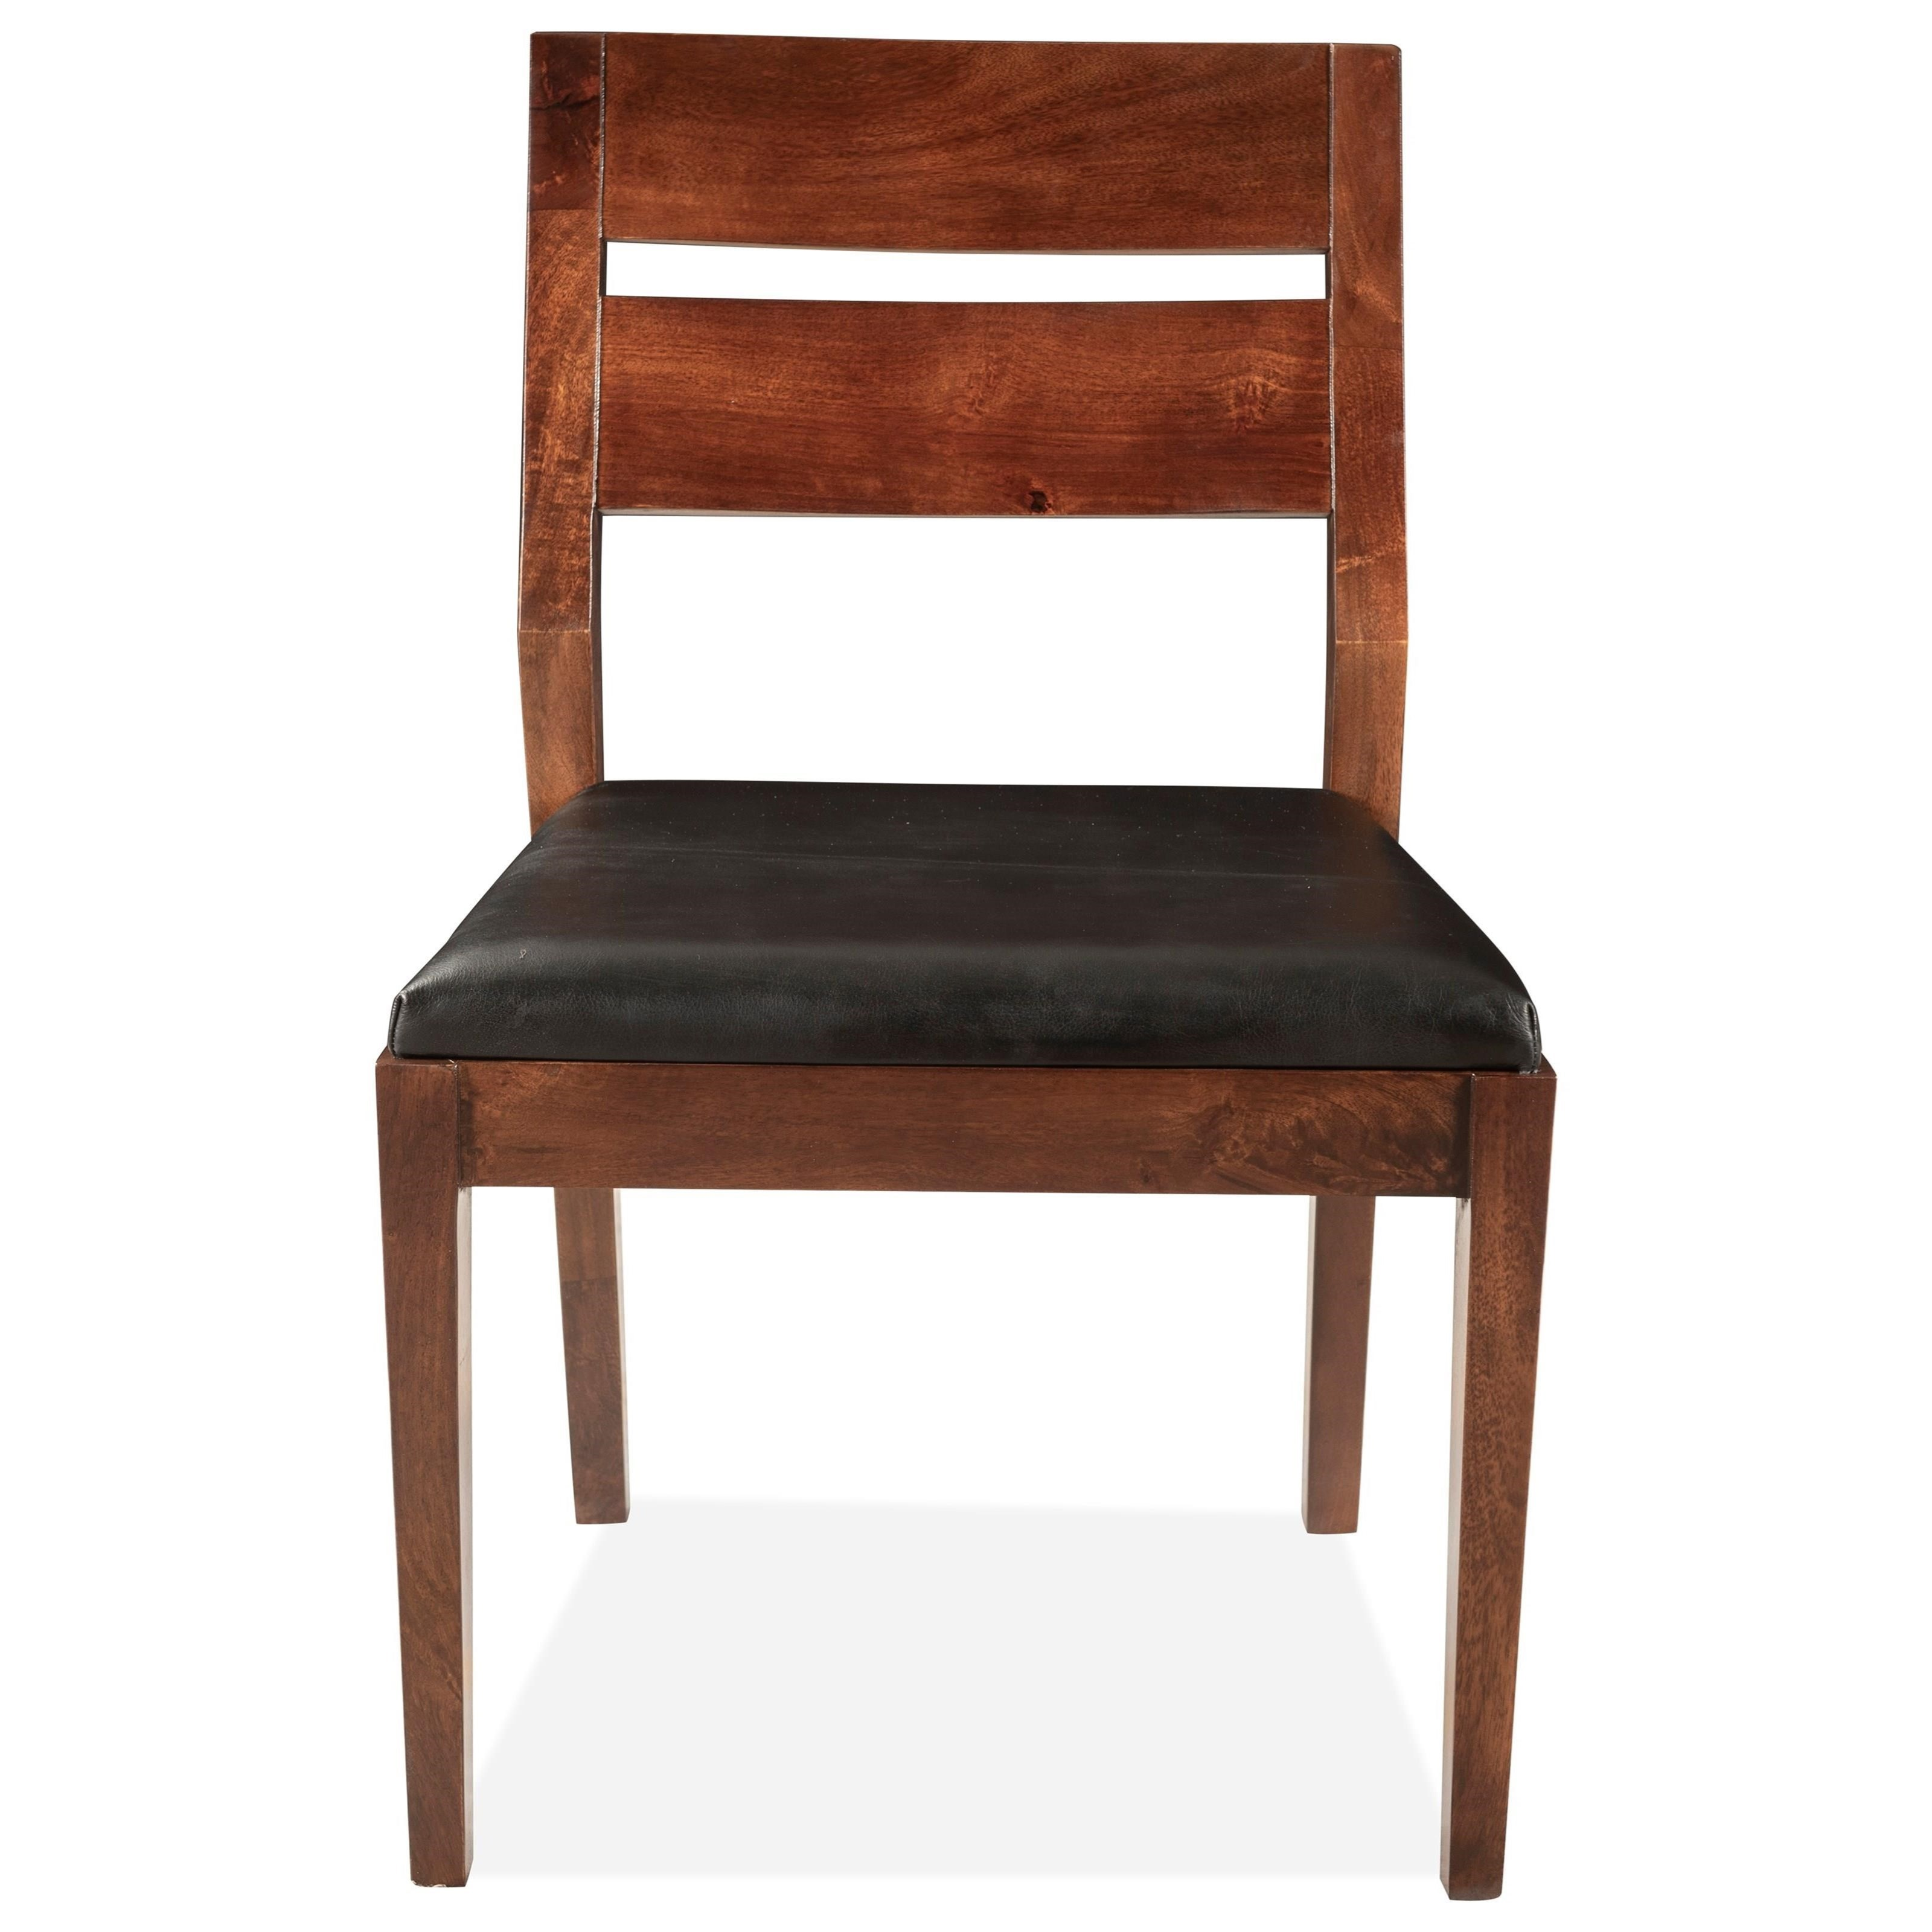 Mix-N-Match Chairs Slt-Bk Uph Side Chair 2in by Riverside Furniture at Zak's Home